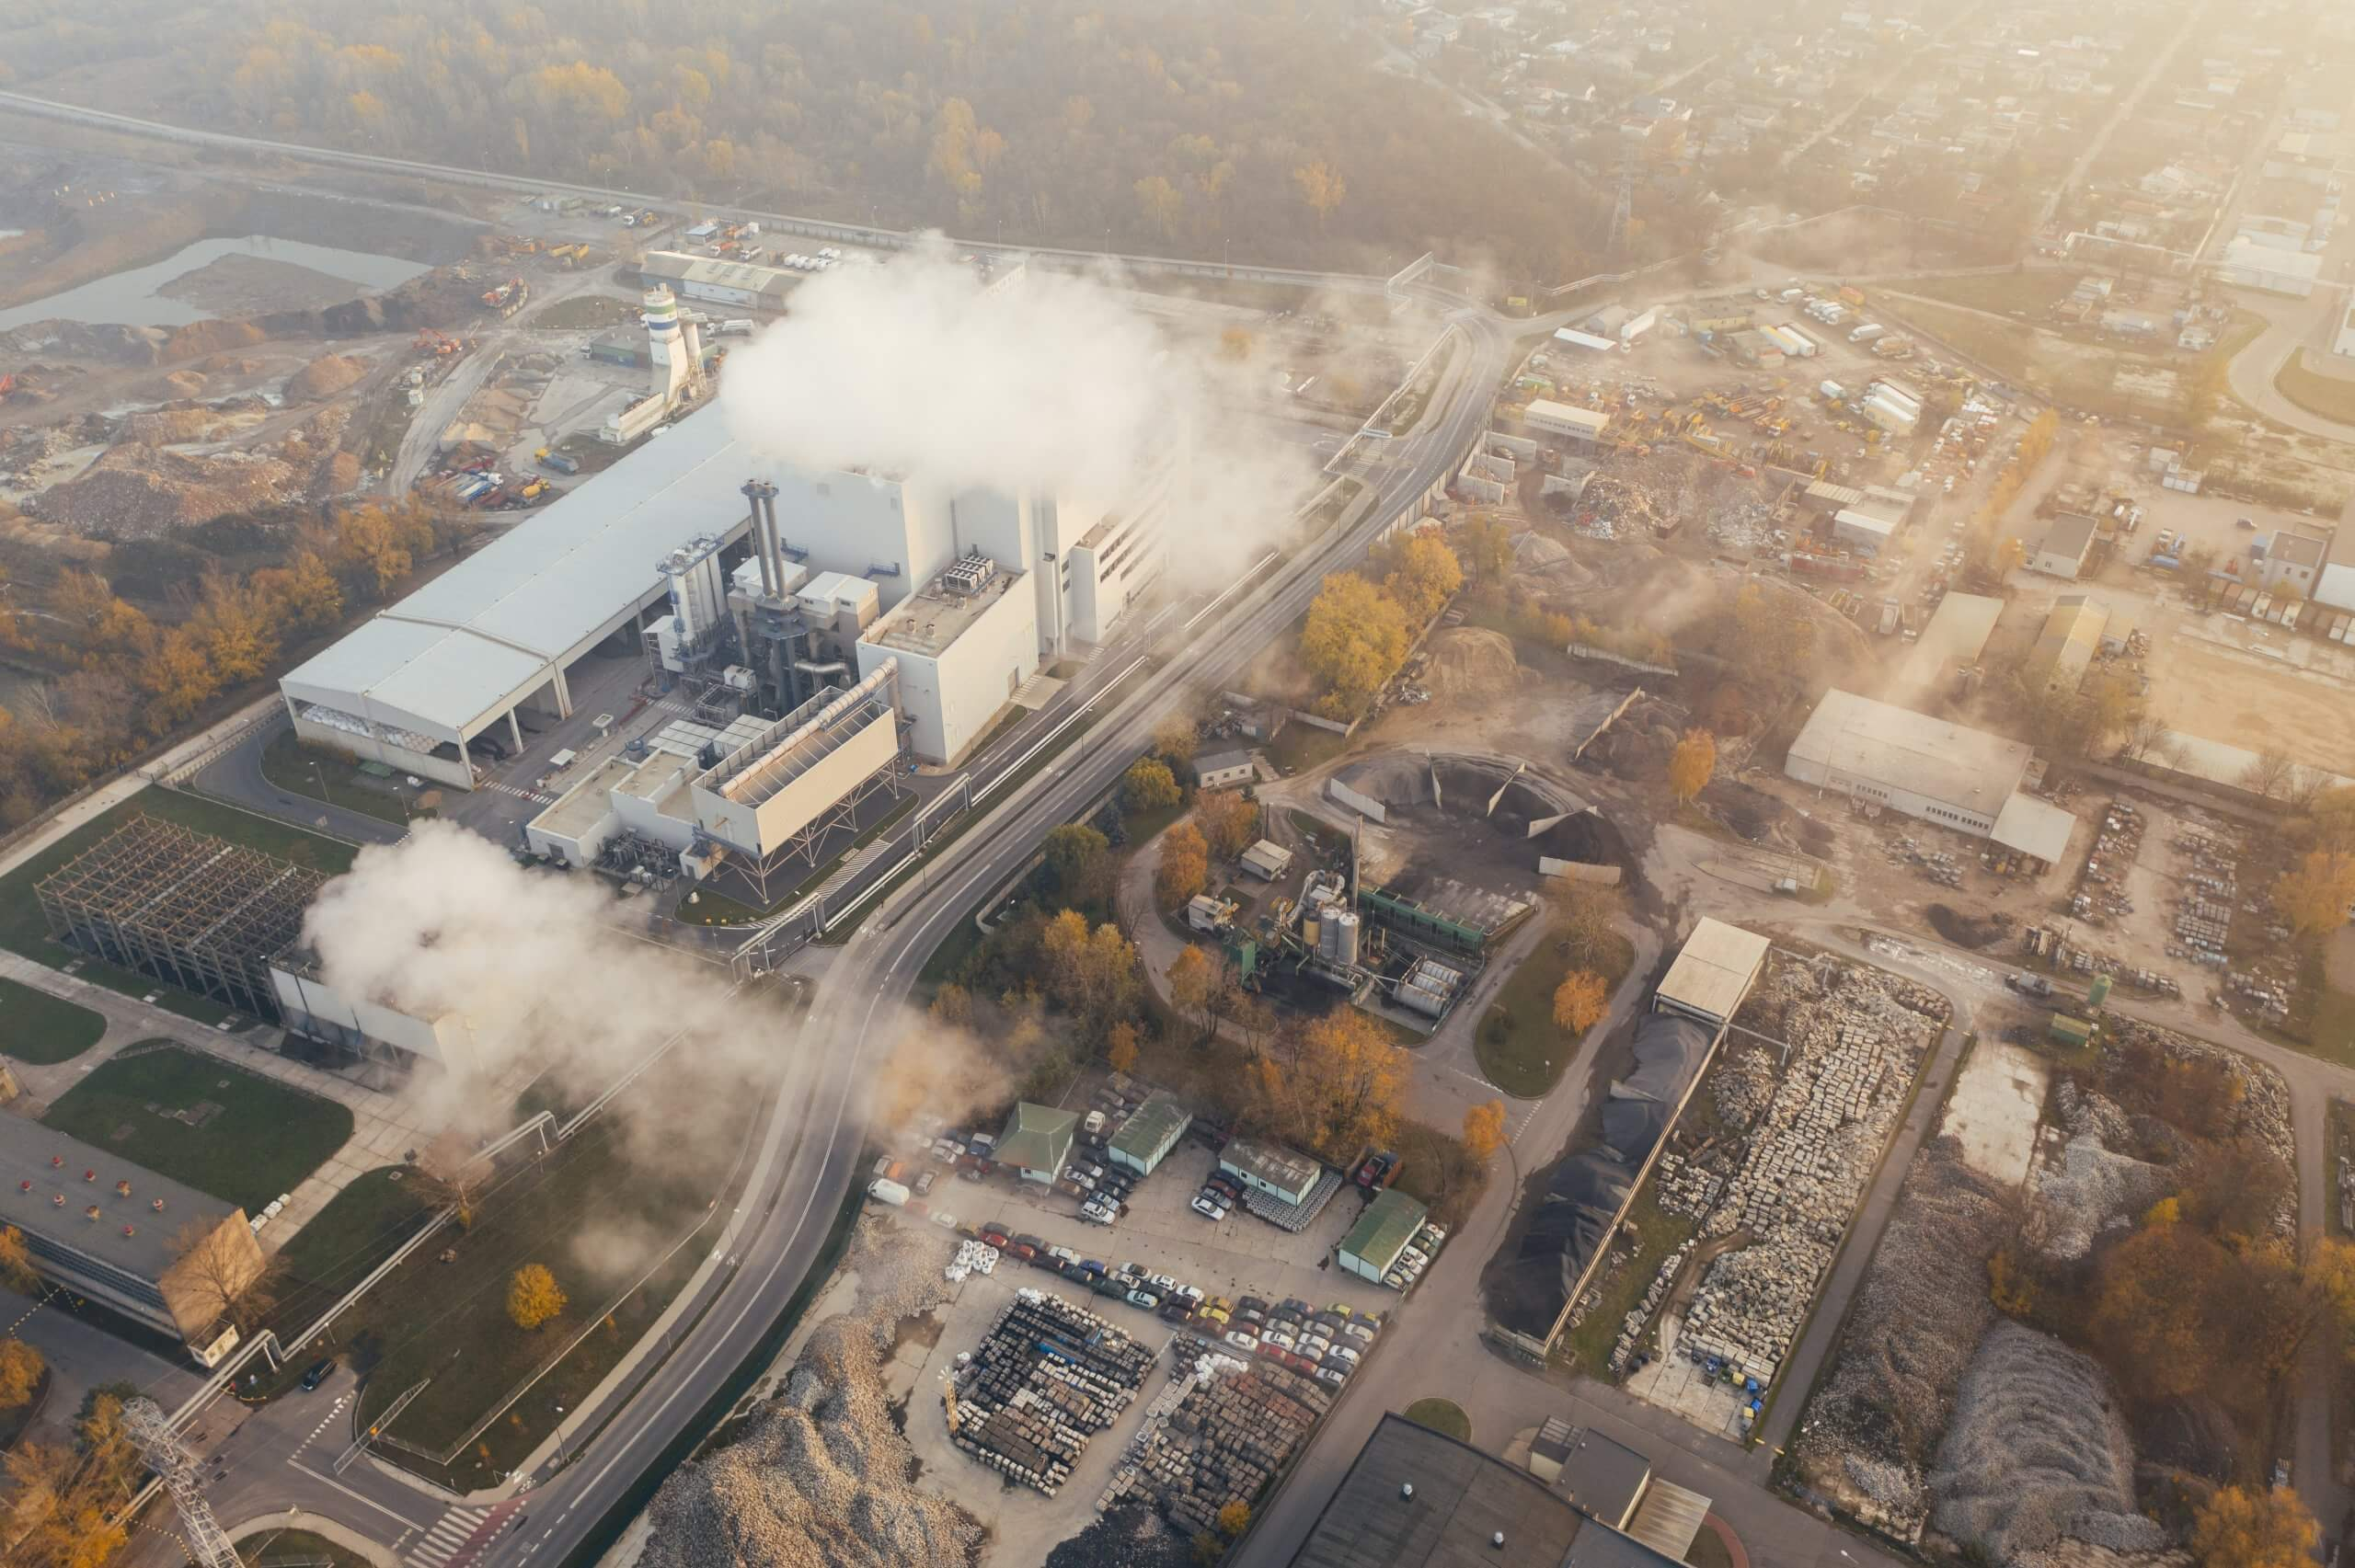 factory emitting pollution